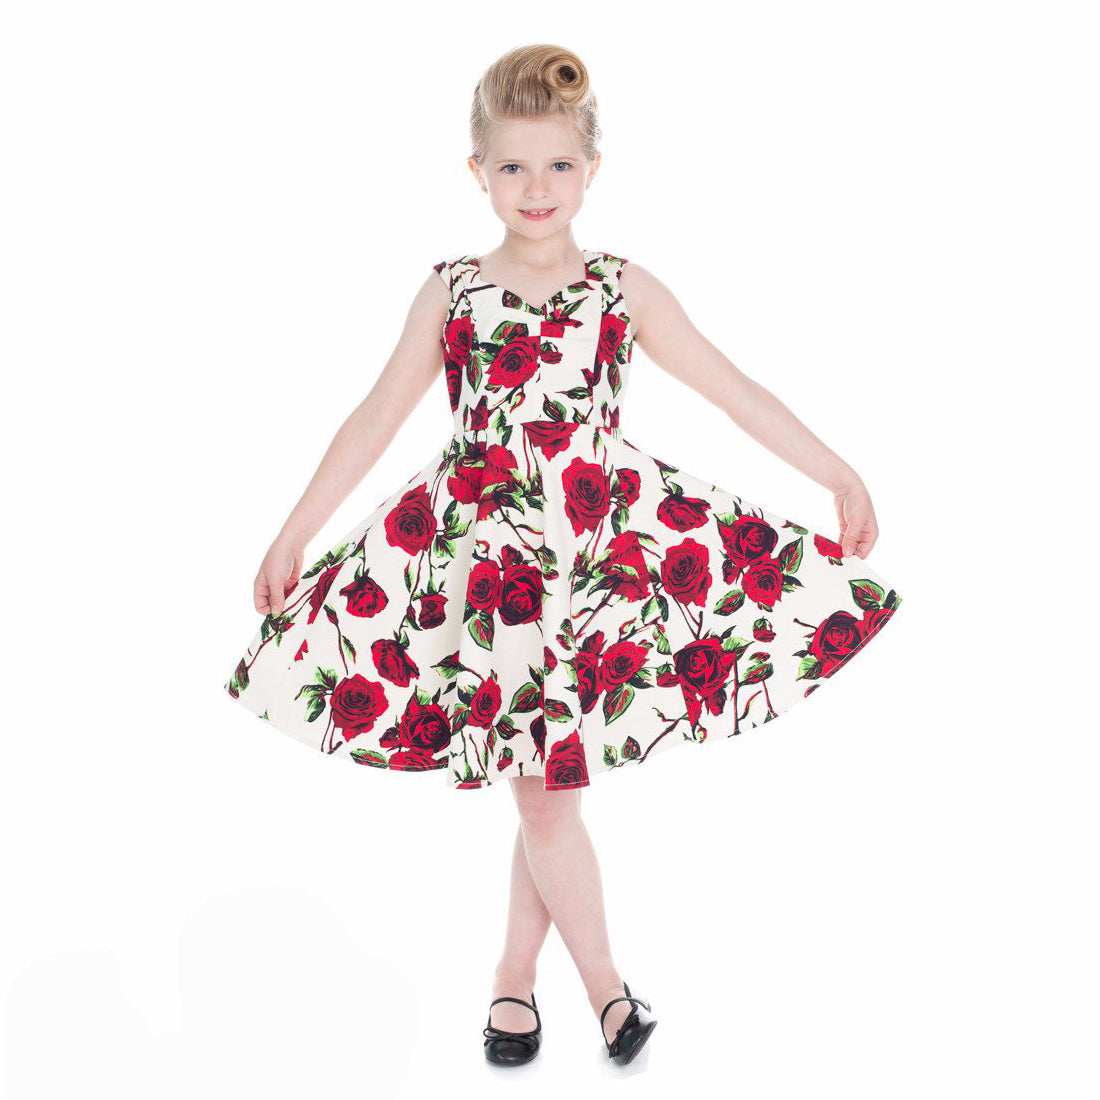 73ff06ec8543 Little Kitty Girl s Cream White Red Rose Floral Party Dress - Pretty Kitty  Fashion